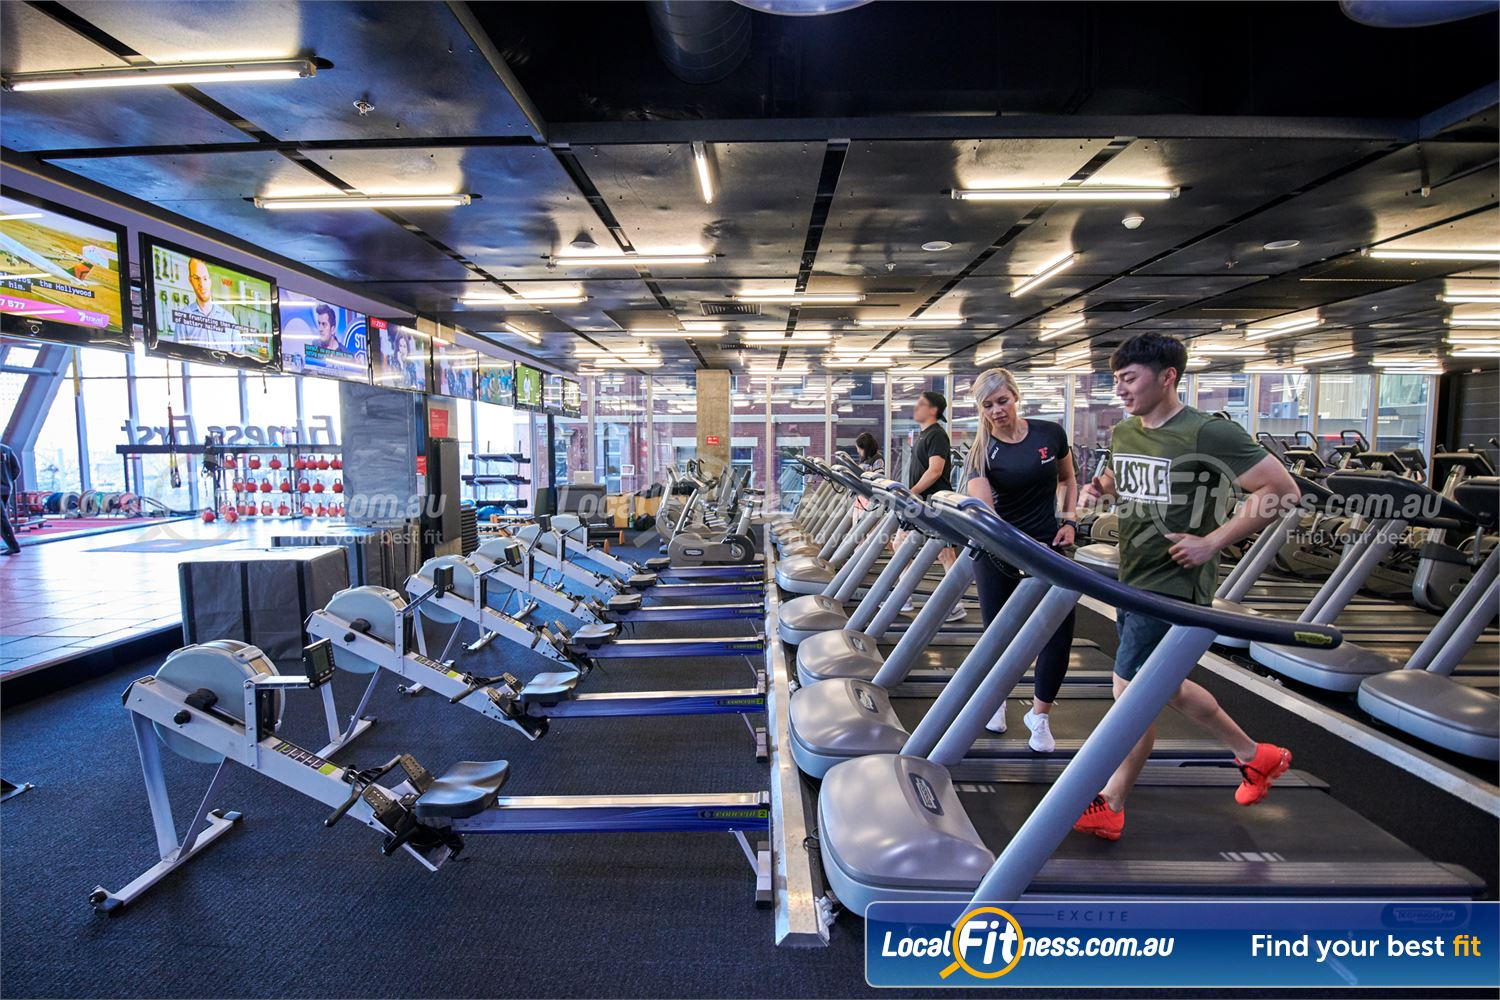 Fitness First QV Platinum Melbourne Rows of state of the art treadmills, cross-trainers and rowers.